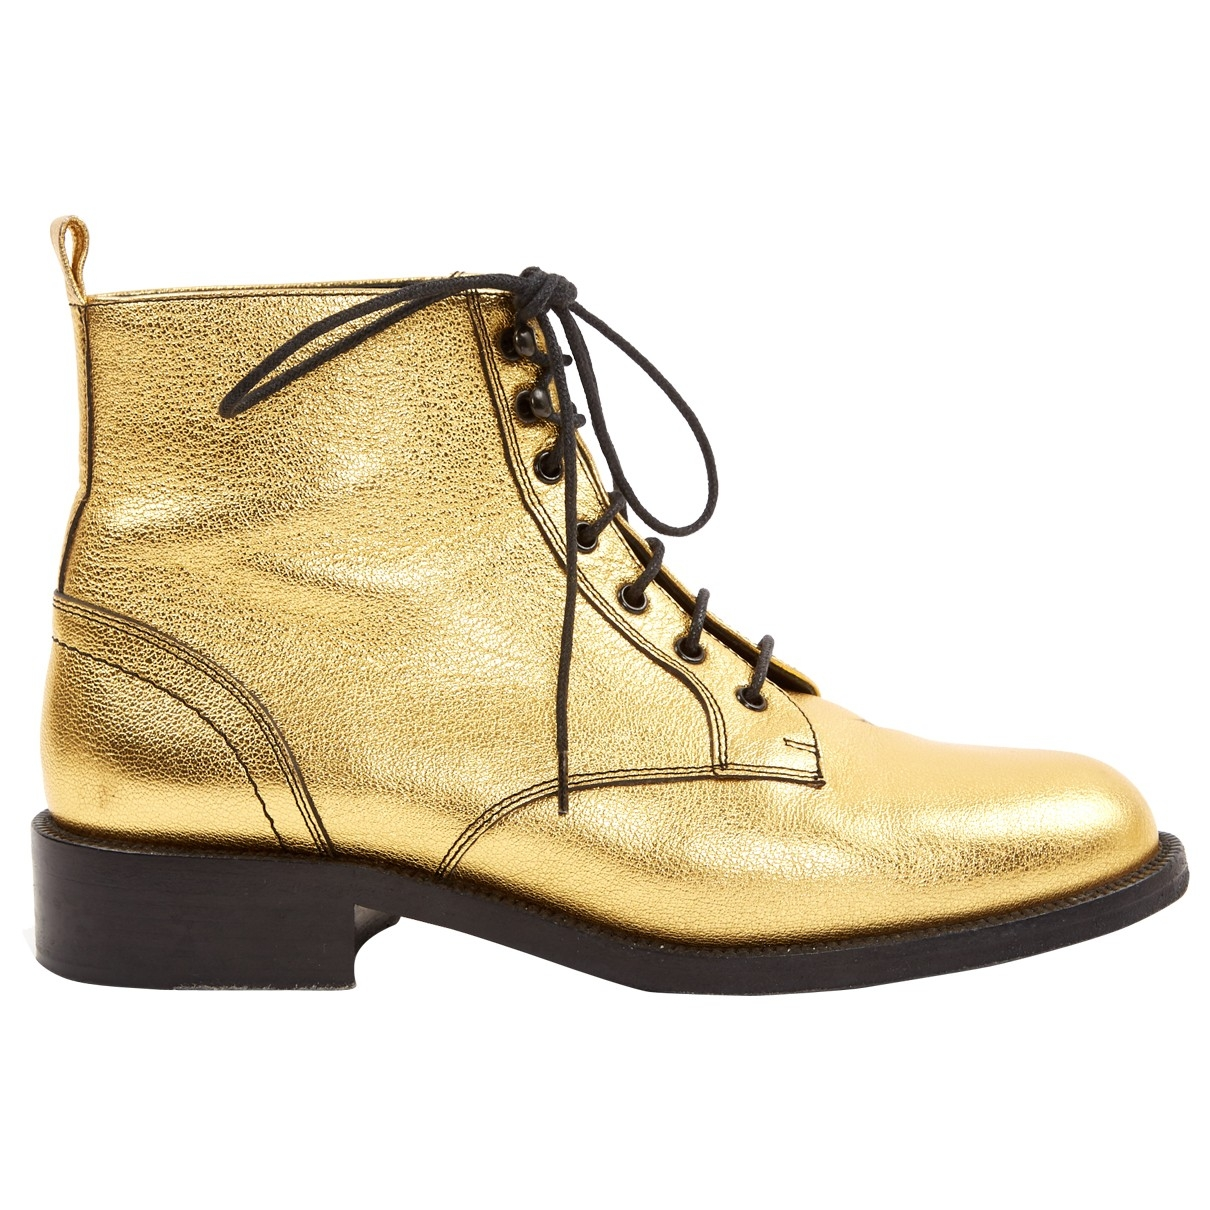 Saint Laurent \N Gold Leather Ankle boots for Women 37 EU